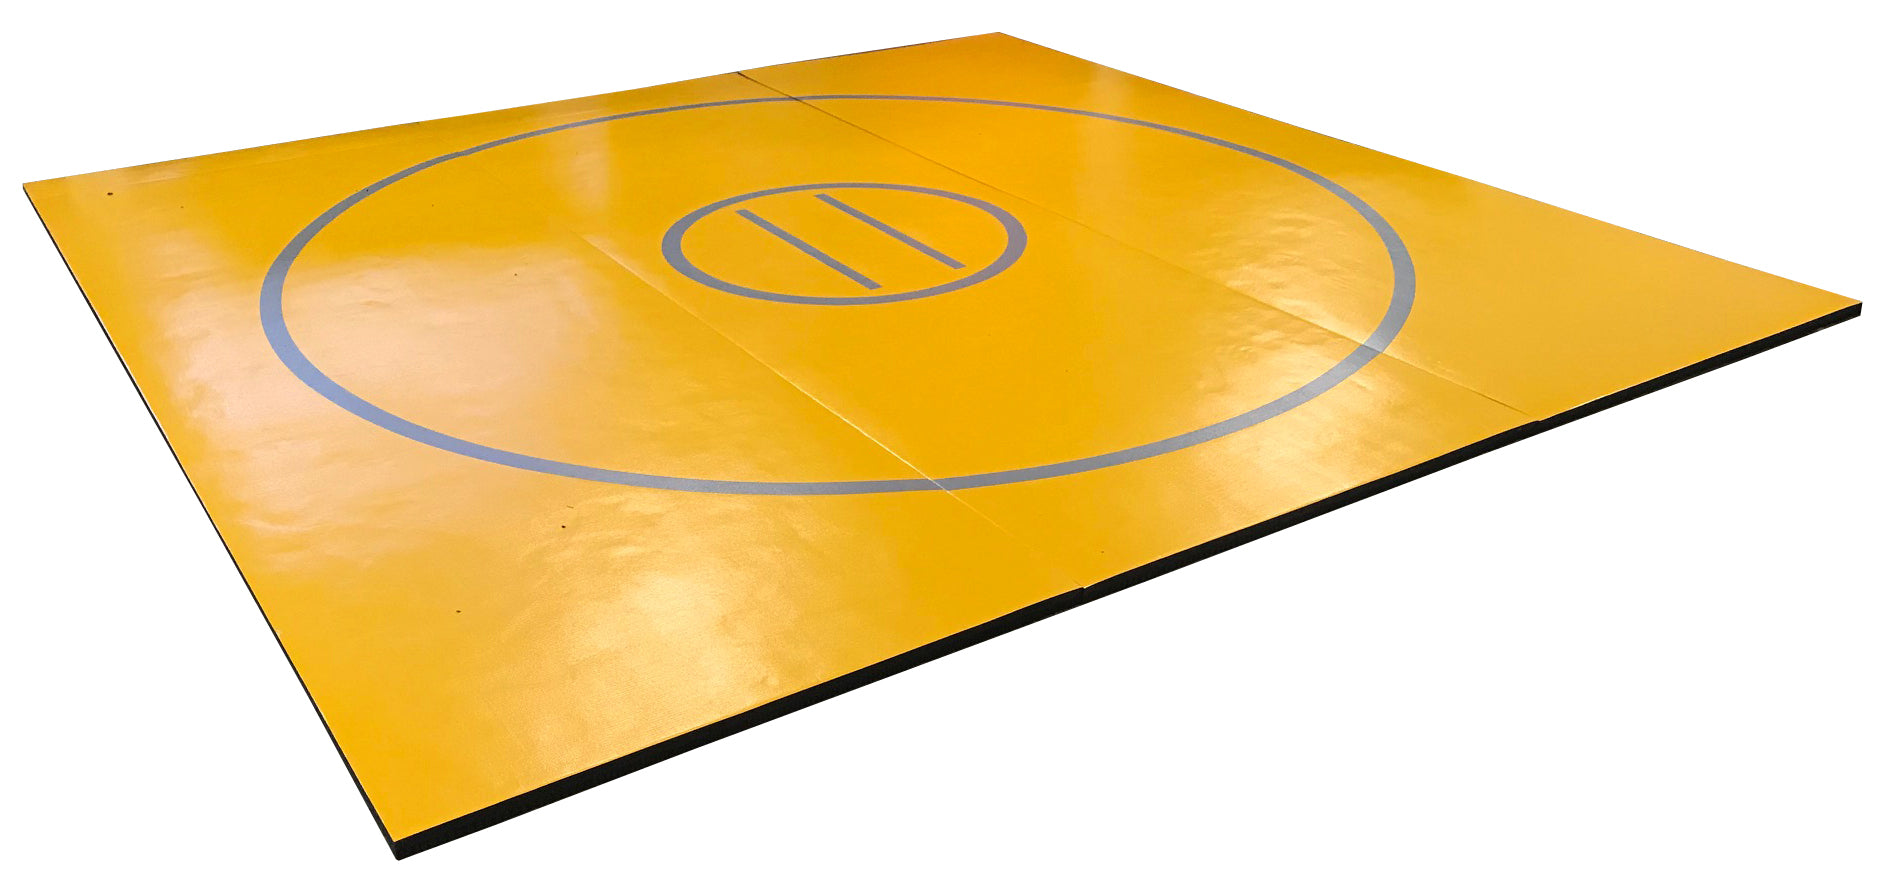 "12' x 12' x 1 3/8"" Gold and Gray Roll-Up Wrestling Mat"